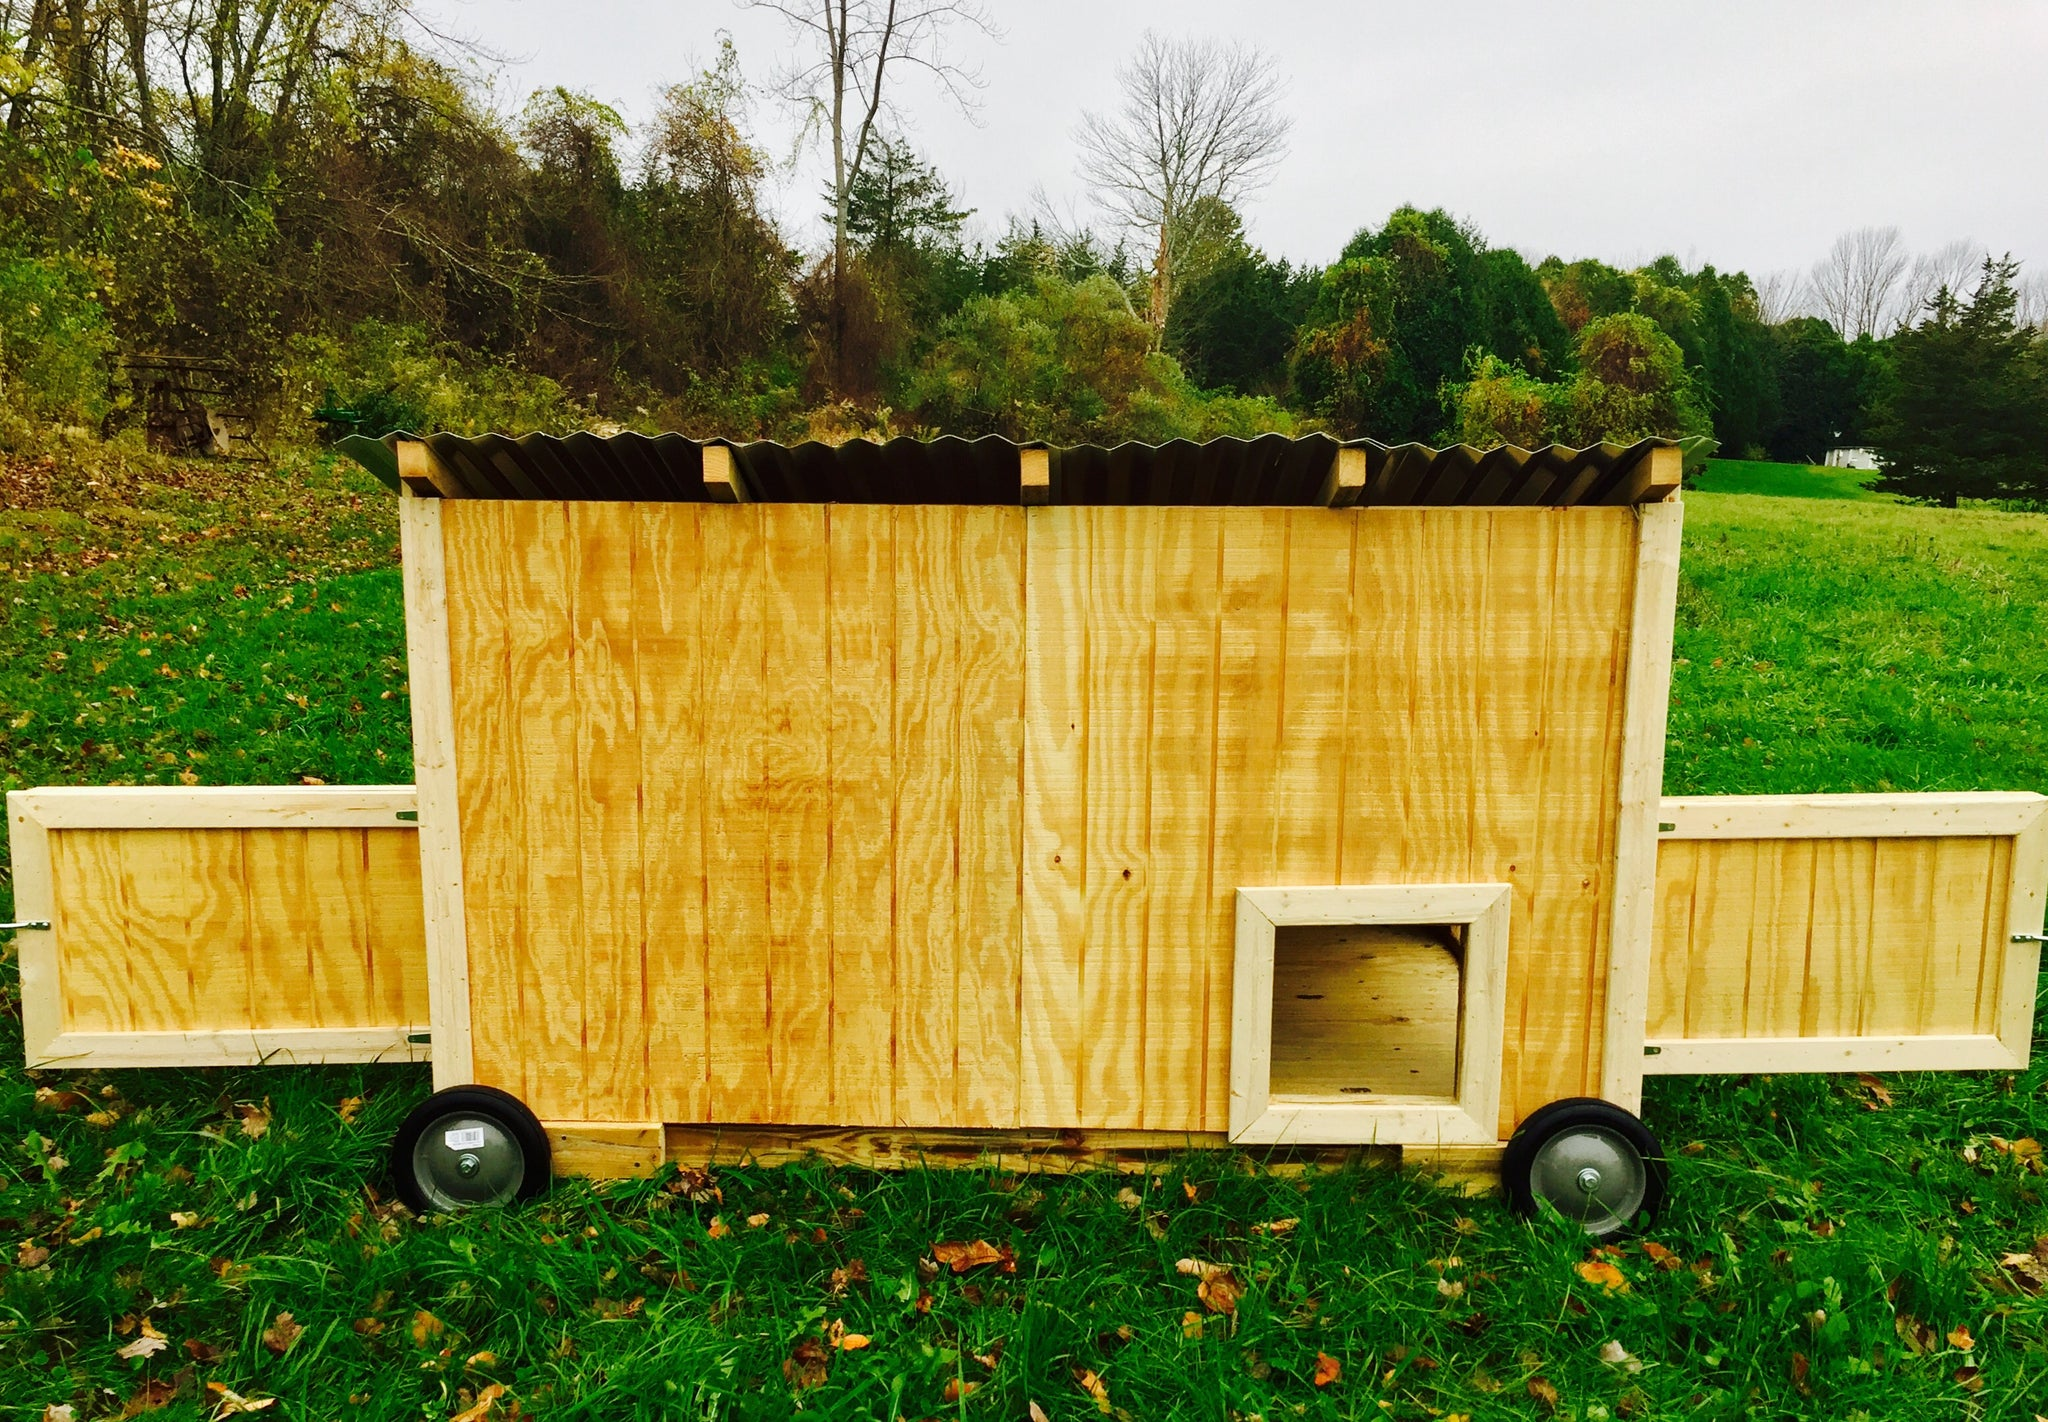 Waterfowl Coop (for Ducks and Geese)